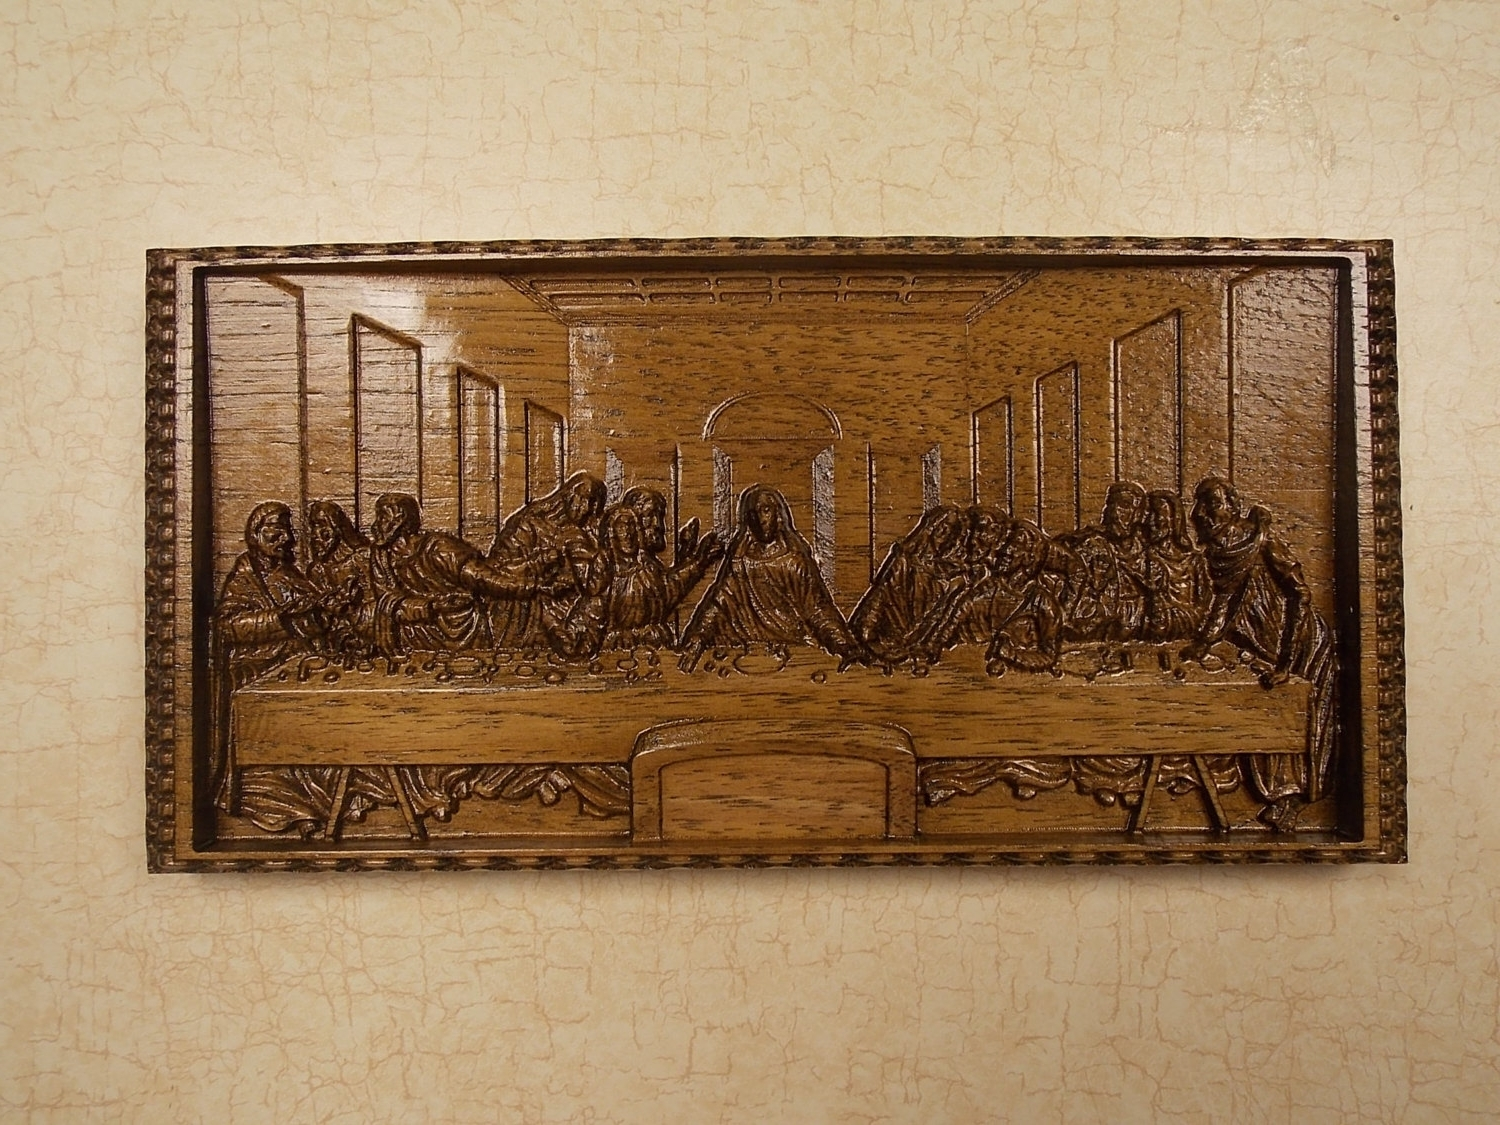 2017 Leonardo Da Vinci, The Last Supper Wall Decor, Cnc 3D Wooden Gifts Intended For Stained Wood Wall Art (View 6 of 15)